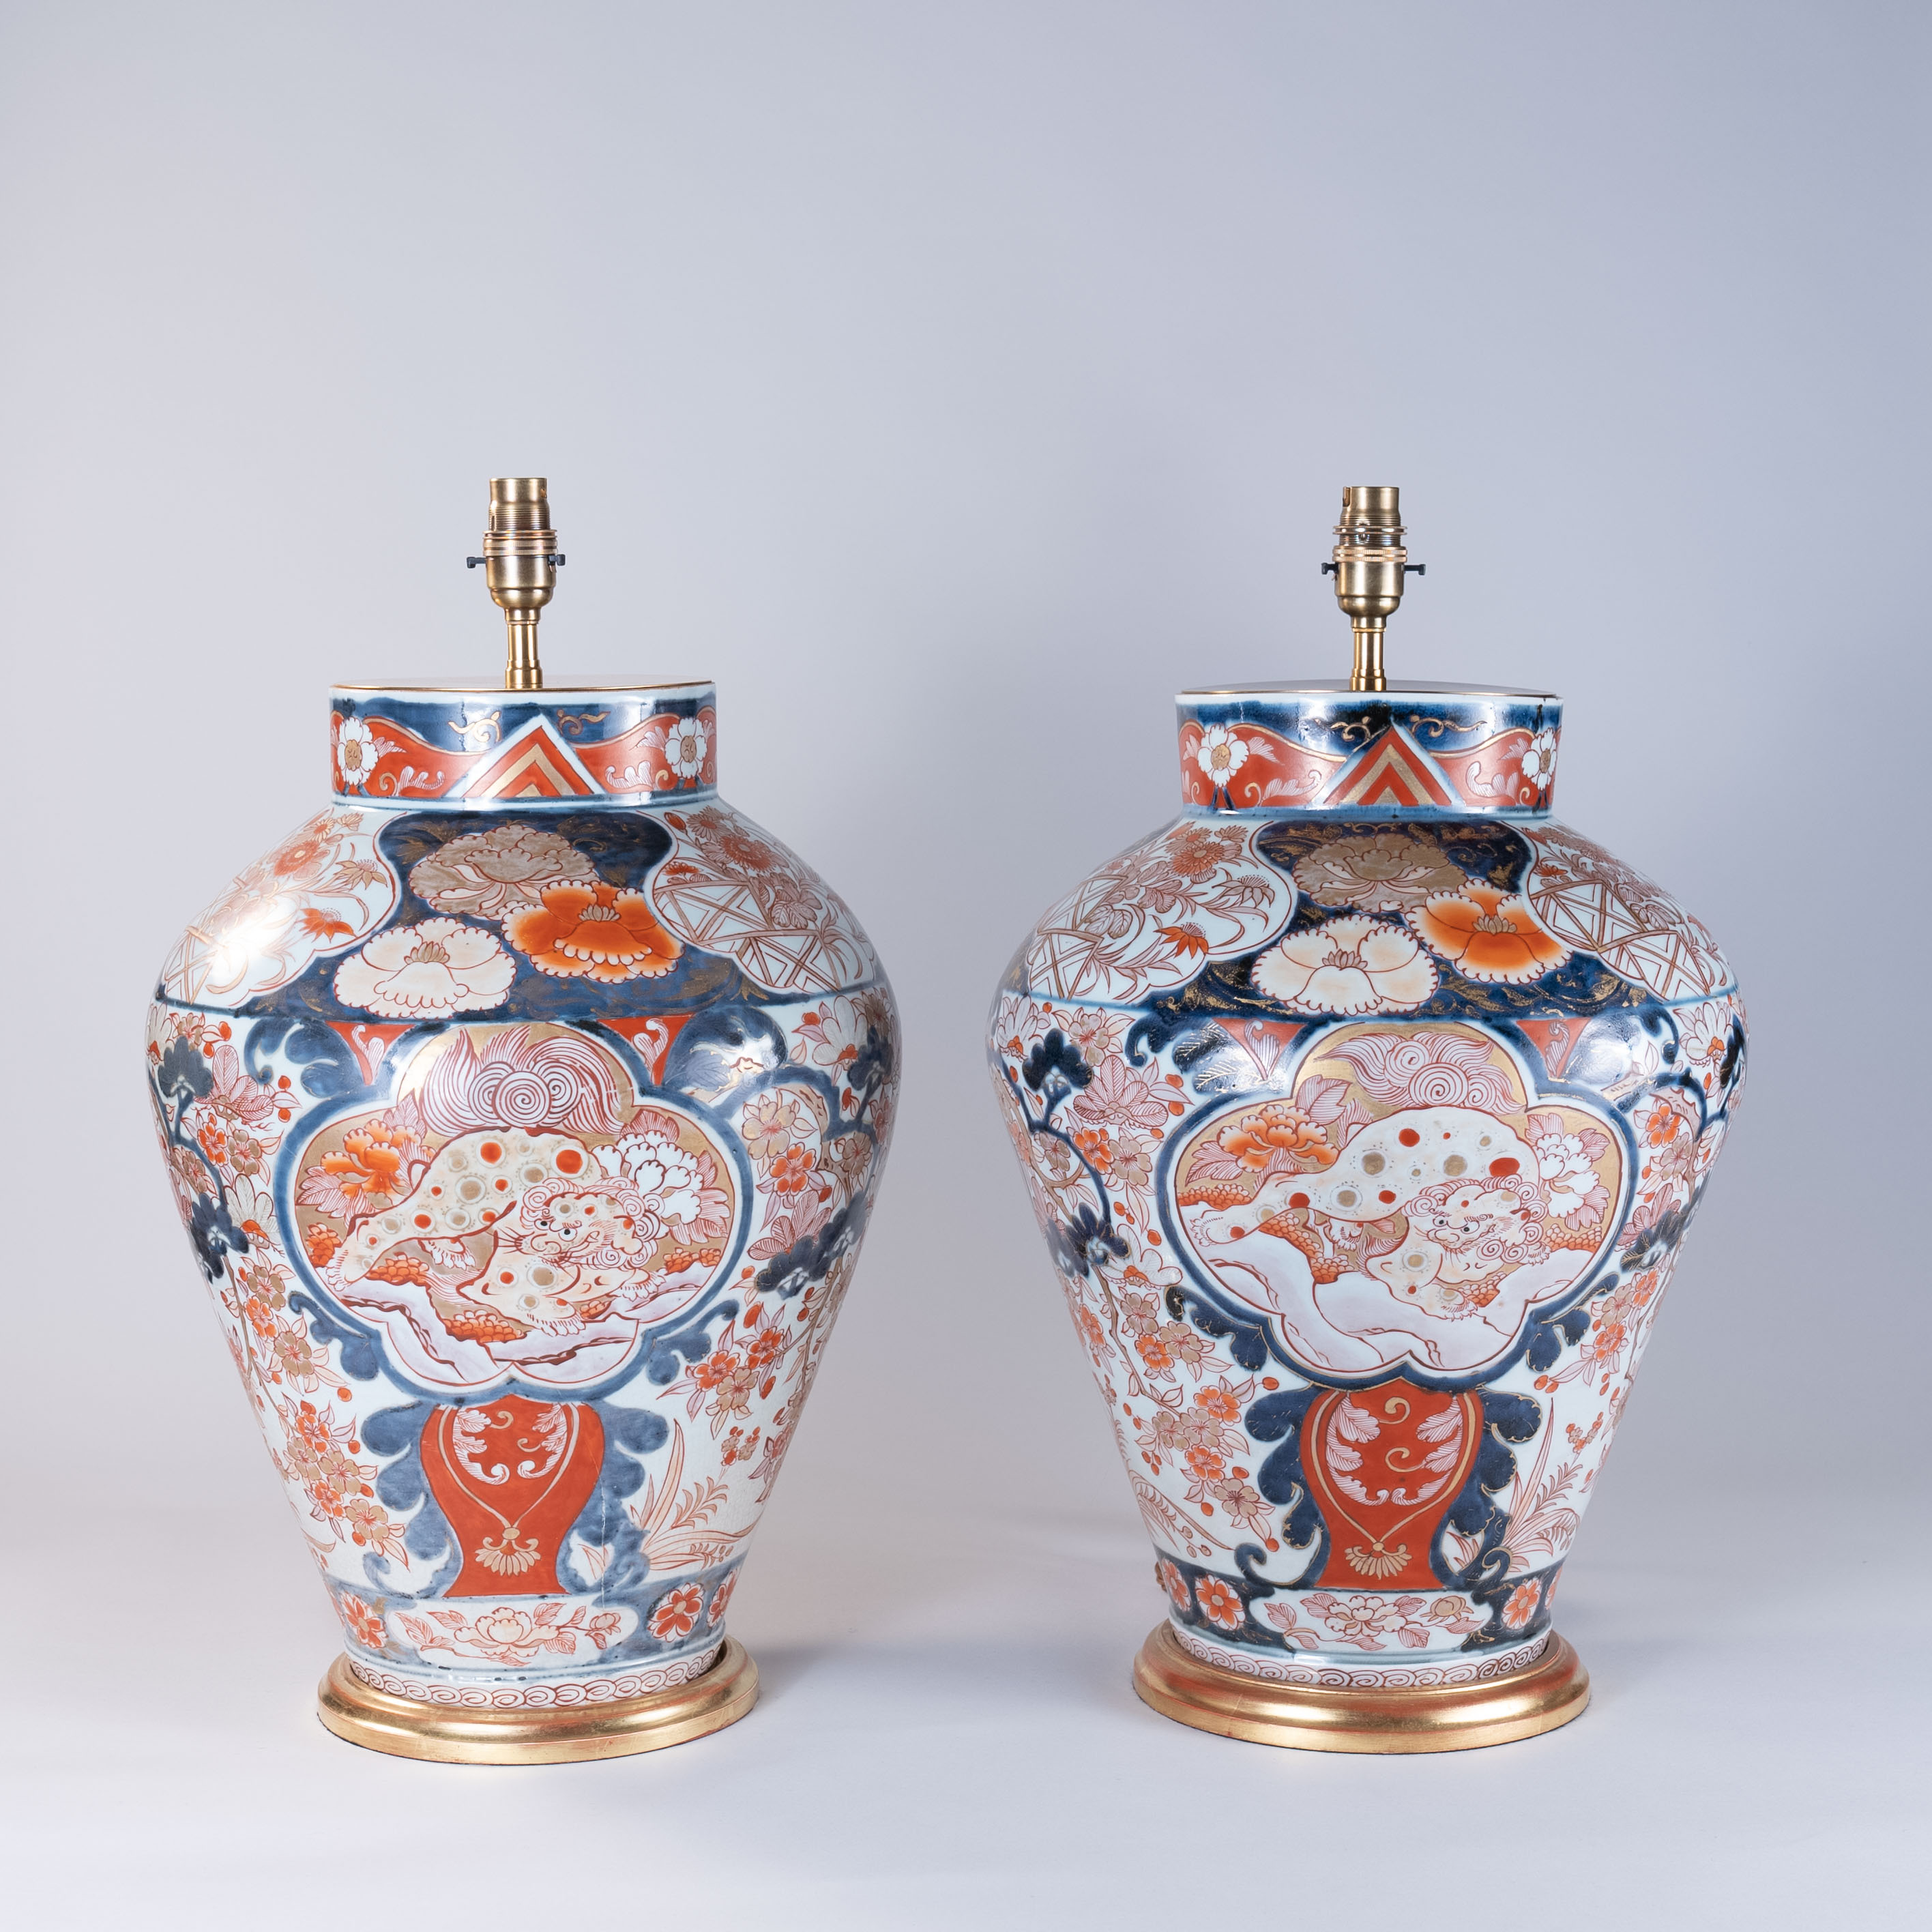 Pair of Early 18th Century Japanese Imari Vases as Lamps